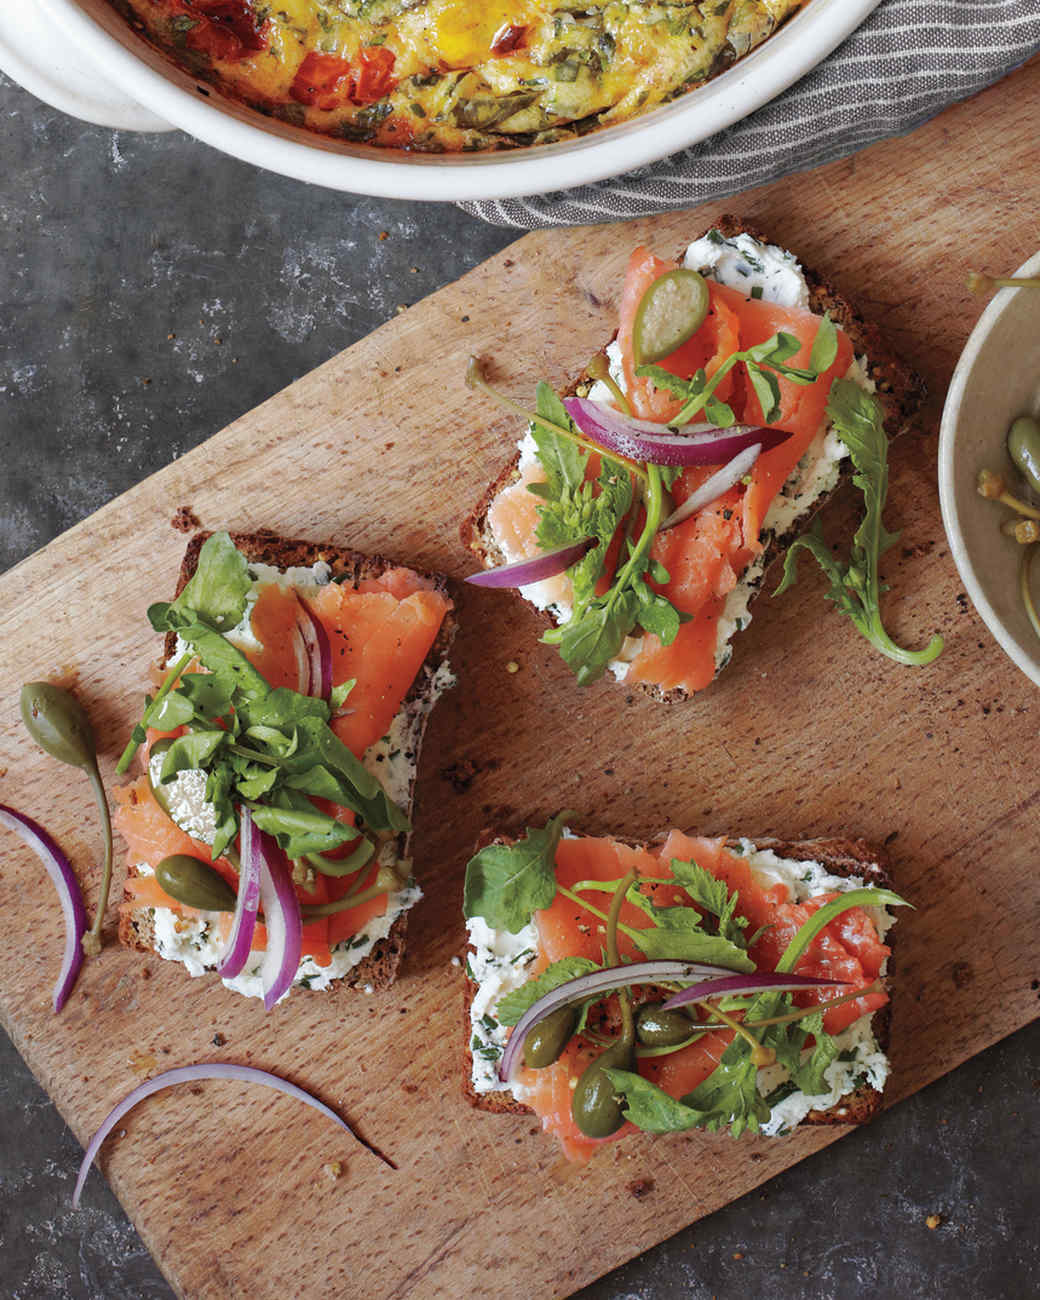 Seeded-Bread Tartines with Herbed Goat Cheese and Smoked Salmon